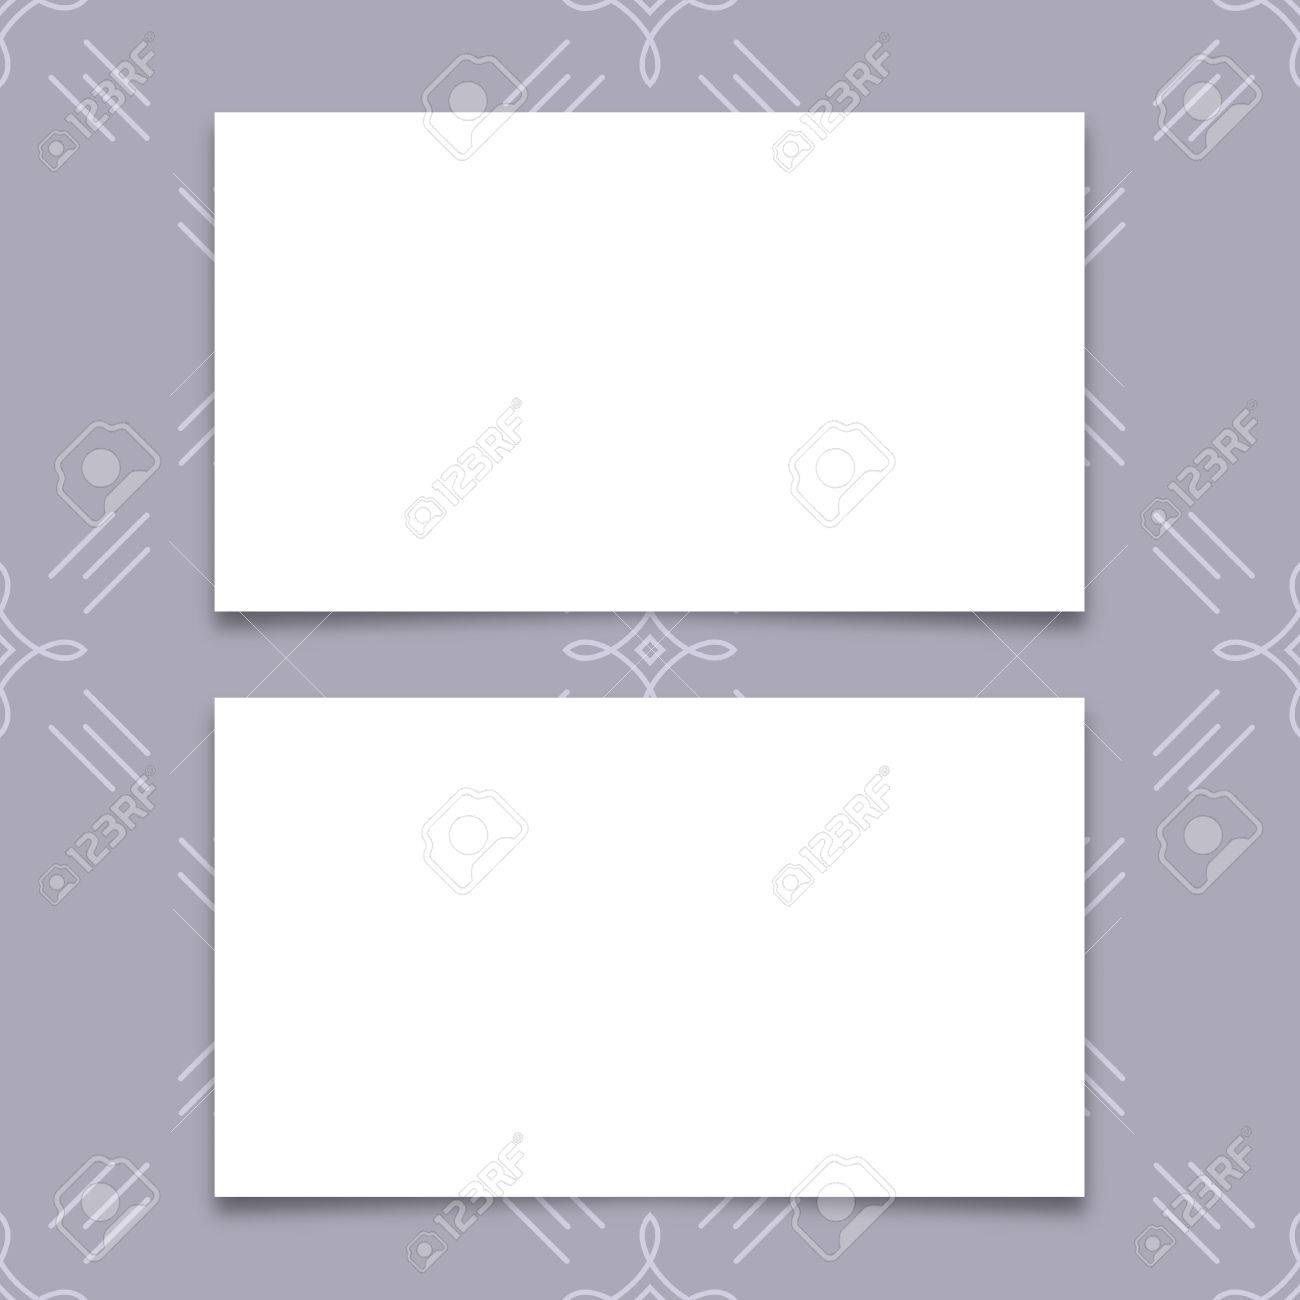 005 Fantastic Plain Busines Card Template Inspiration  White Free Download Blank Printable Word 2010Full